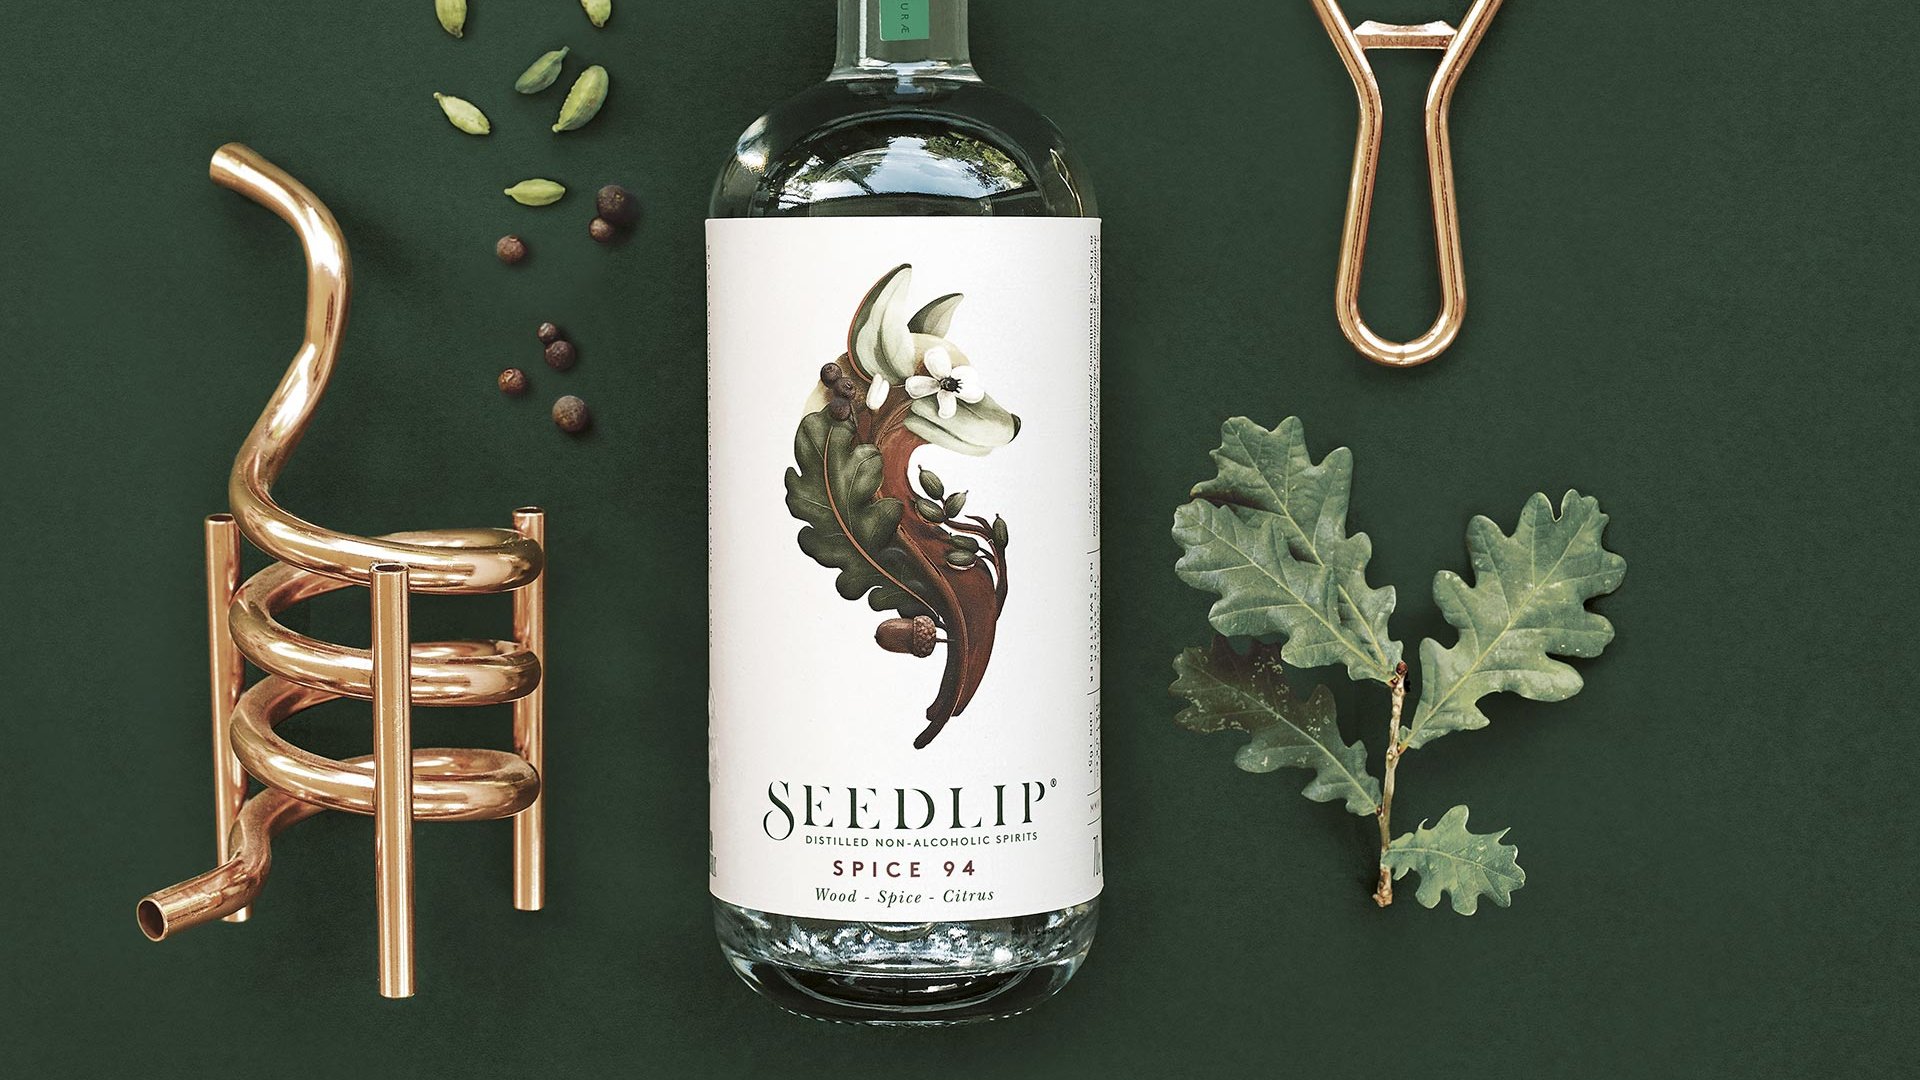 Seedlip competition